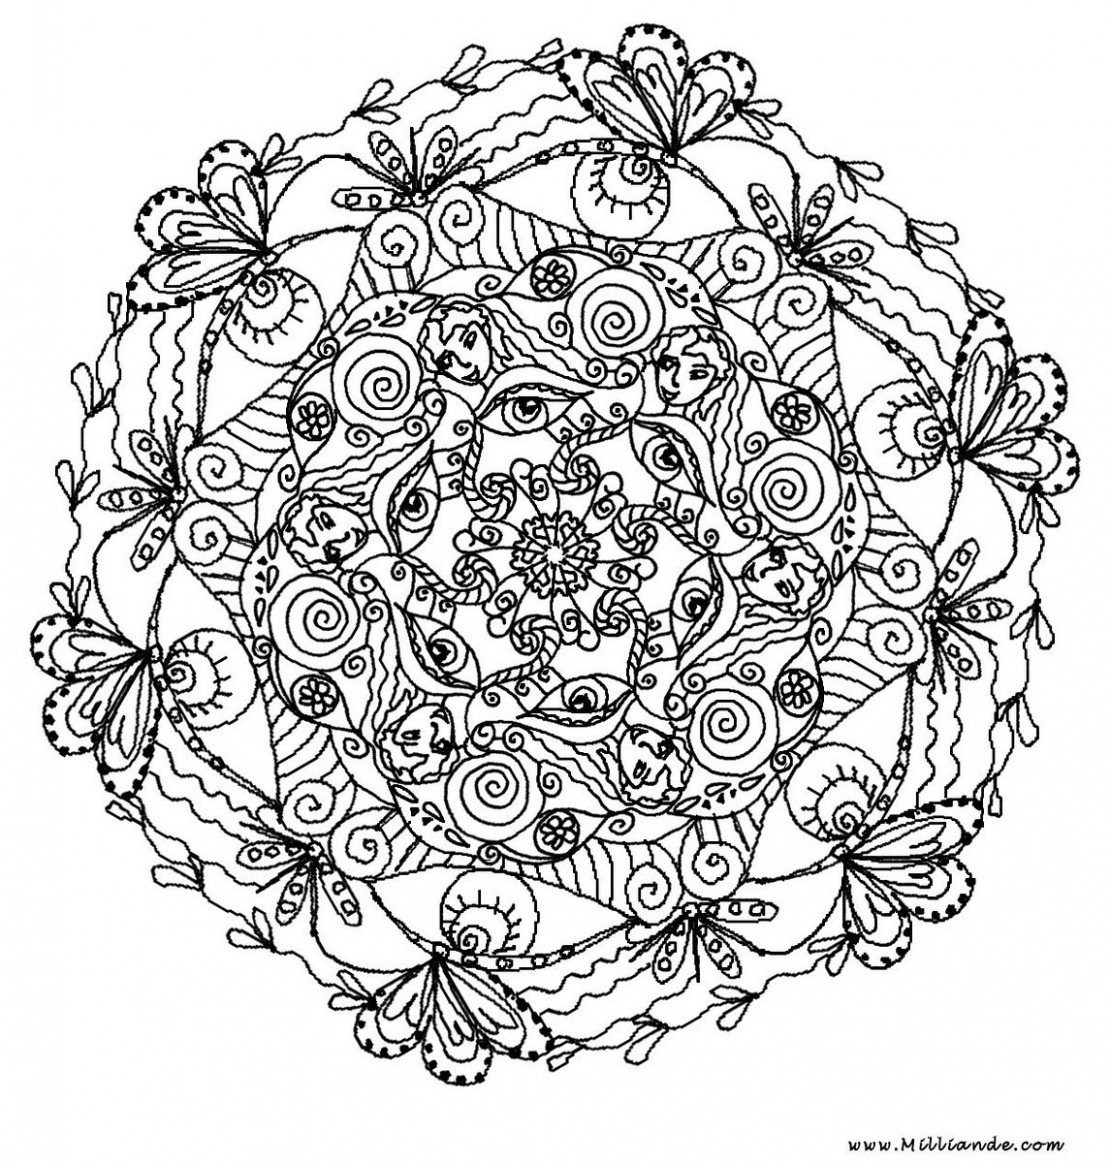 Printable Mandala Coloring Pages Mandala Coloring Pages For Adults - Free Printable Mandala Coloring Pages For Adults